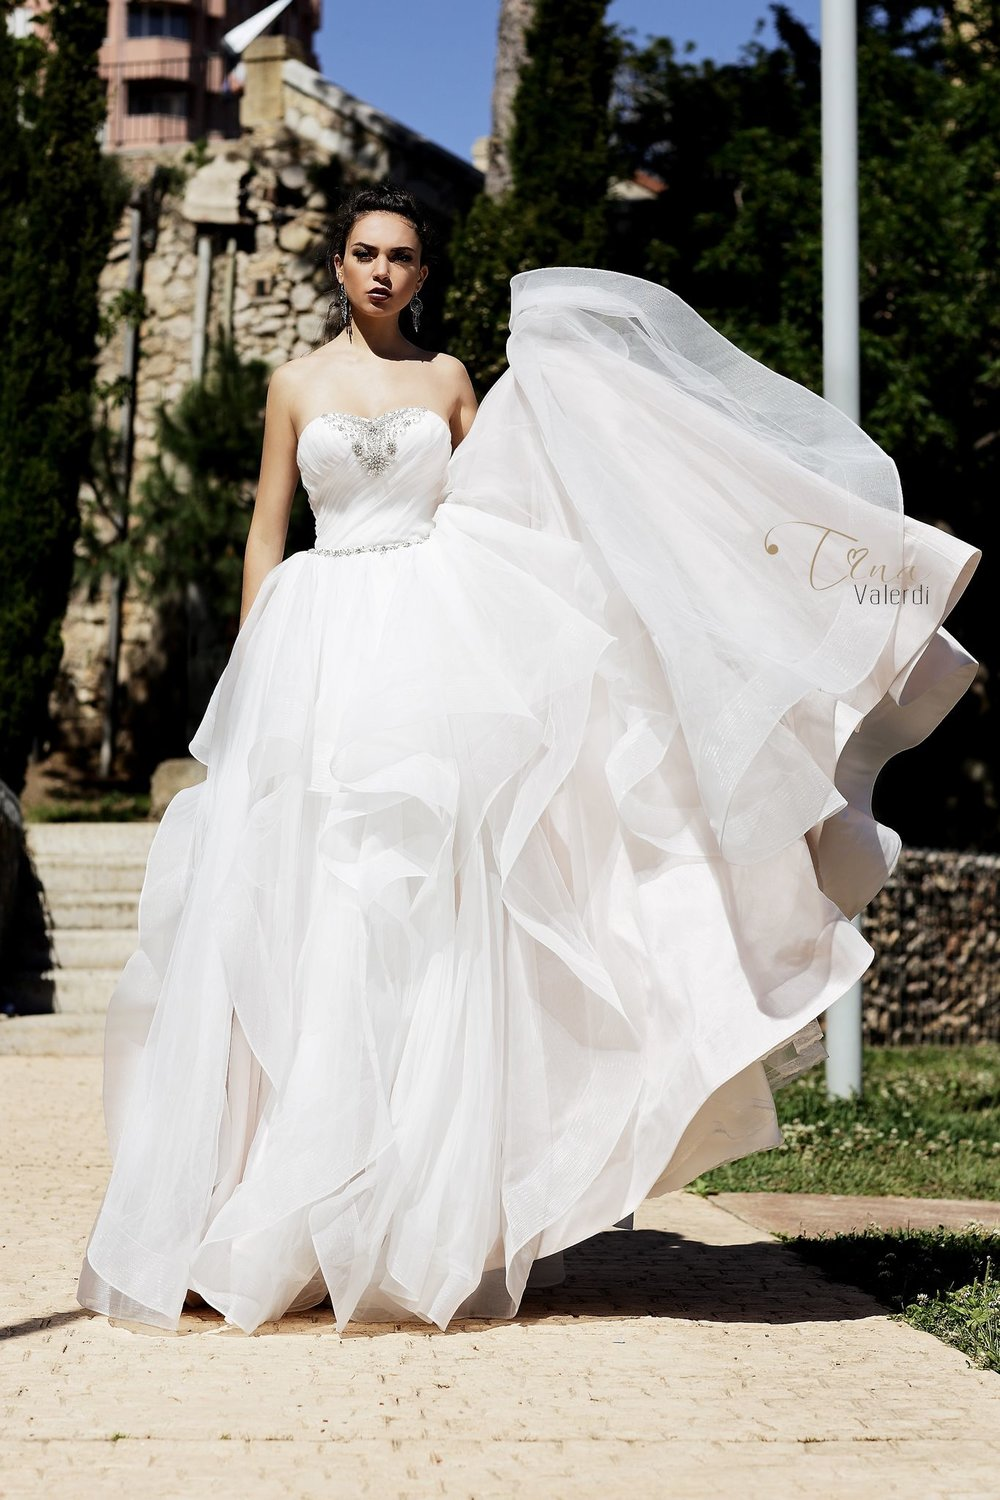 ANGELA wedding dress by TINA VALERDI